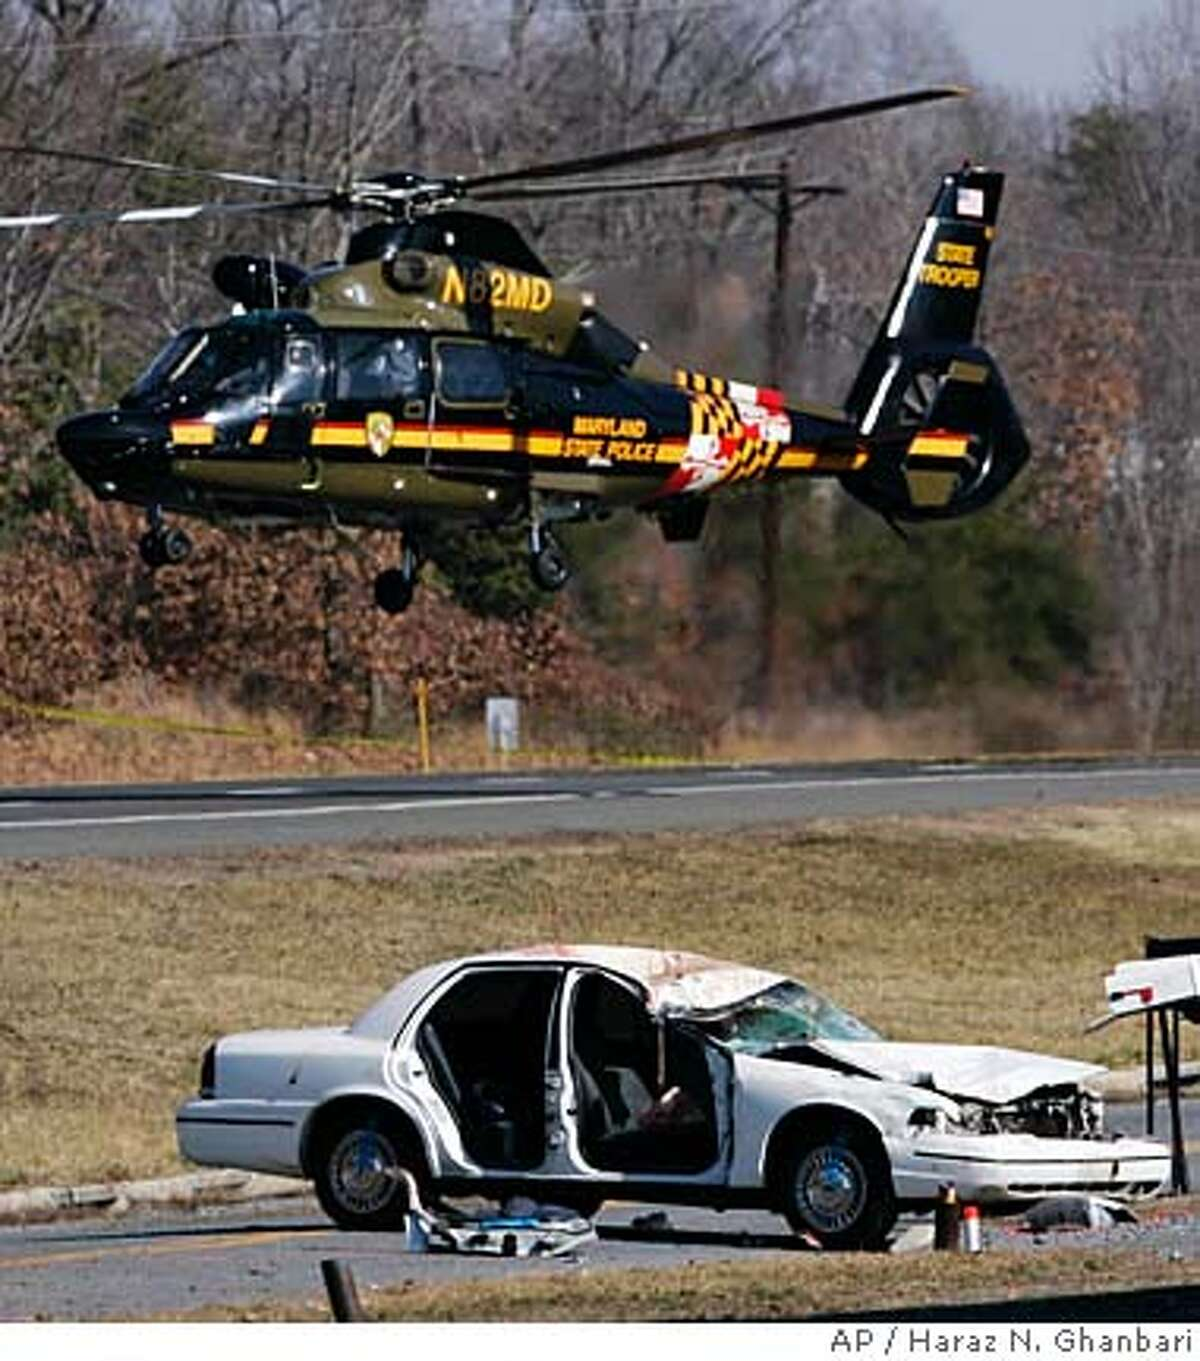 A Maryland State Police helicopter takes off from the scene of a car crash on Indian Head Highway, Saturday, Feb. 16, 2008, in Accokeek, Md. A car plowed into a crowd that had gathered to watch a drag race on the suburban road early Saturday, killing seven people and injuring at least four, police said. (AP Photo/Haraz N. Ghanbari)